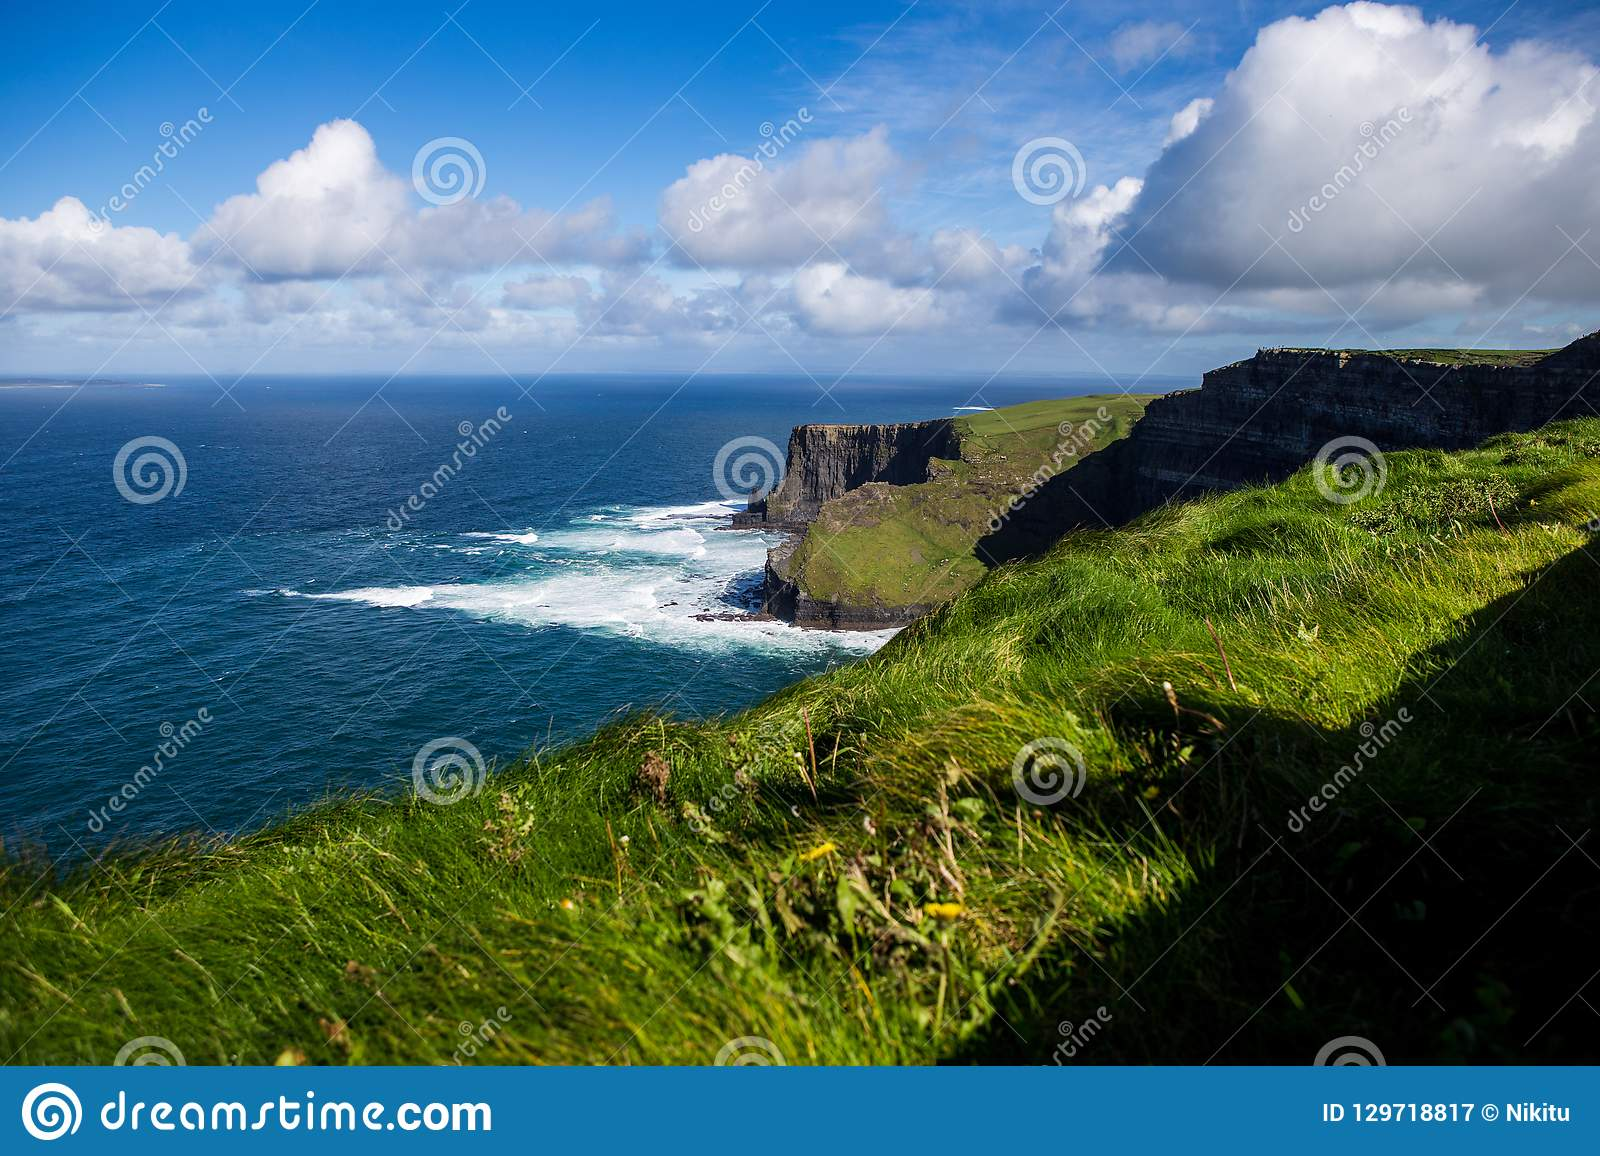 Cliffs of Moher at Alantic Ocean in Western Ireland with waves battering against the rocks